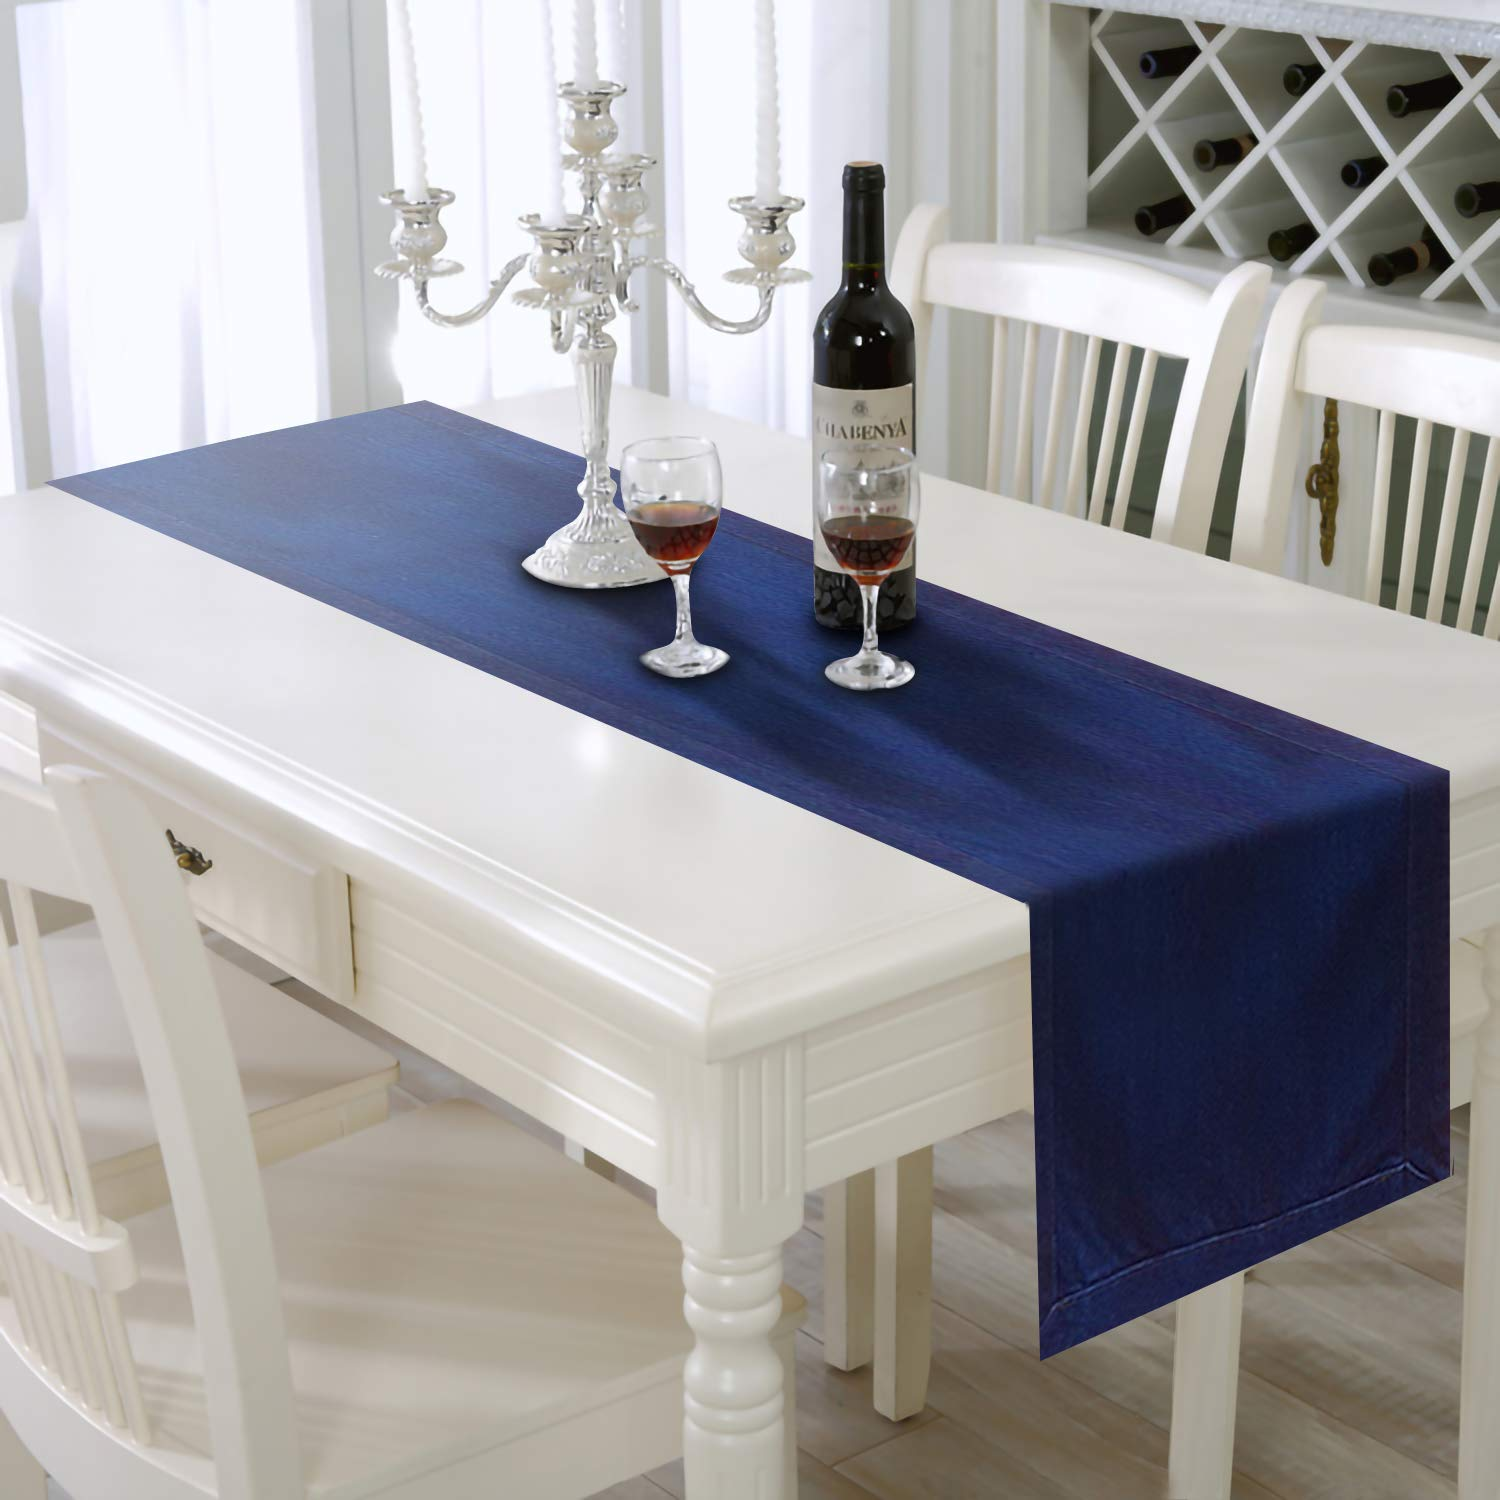 AAYU Denim Table, Bed Runner | 16 Inch x 108 Inch | Cut and Sewn All The Way Around | Premium Quality Stone Washed | Perfect for Weddings, Parties & Decor